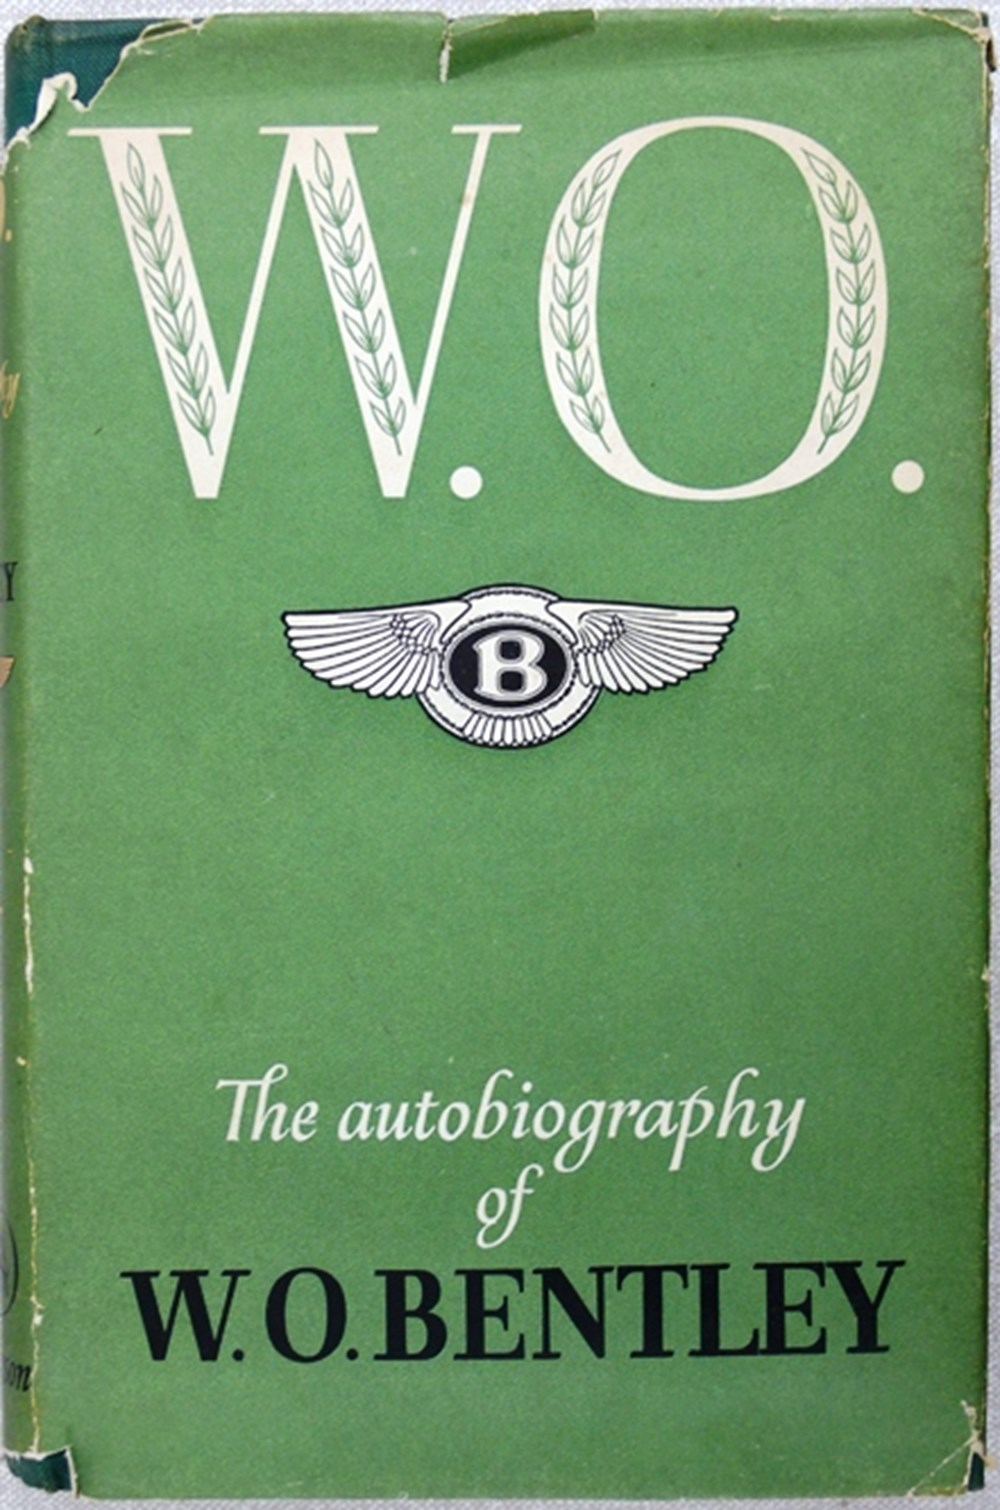 Lot 024 -  W. O. Bentley signed book